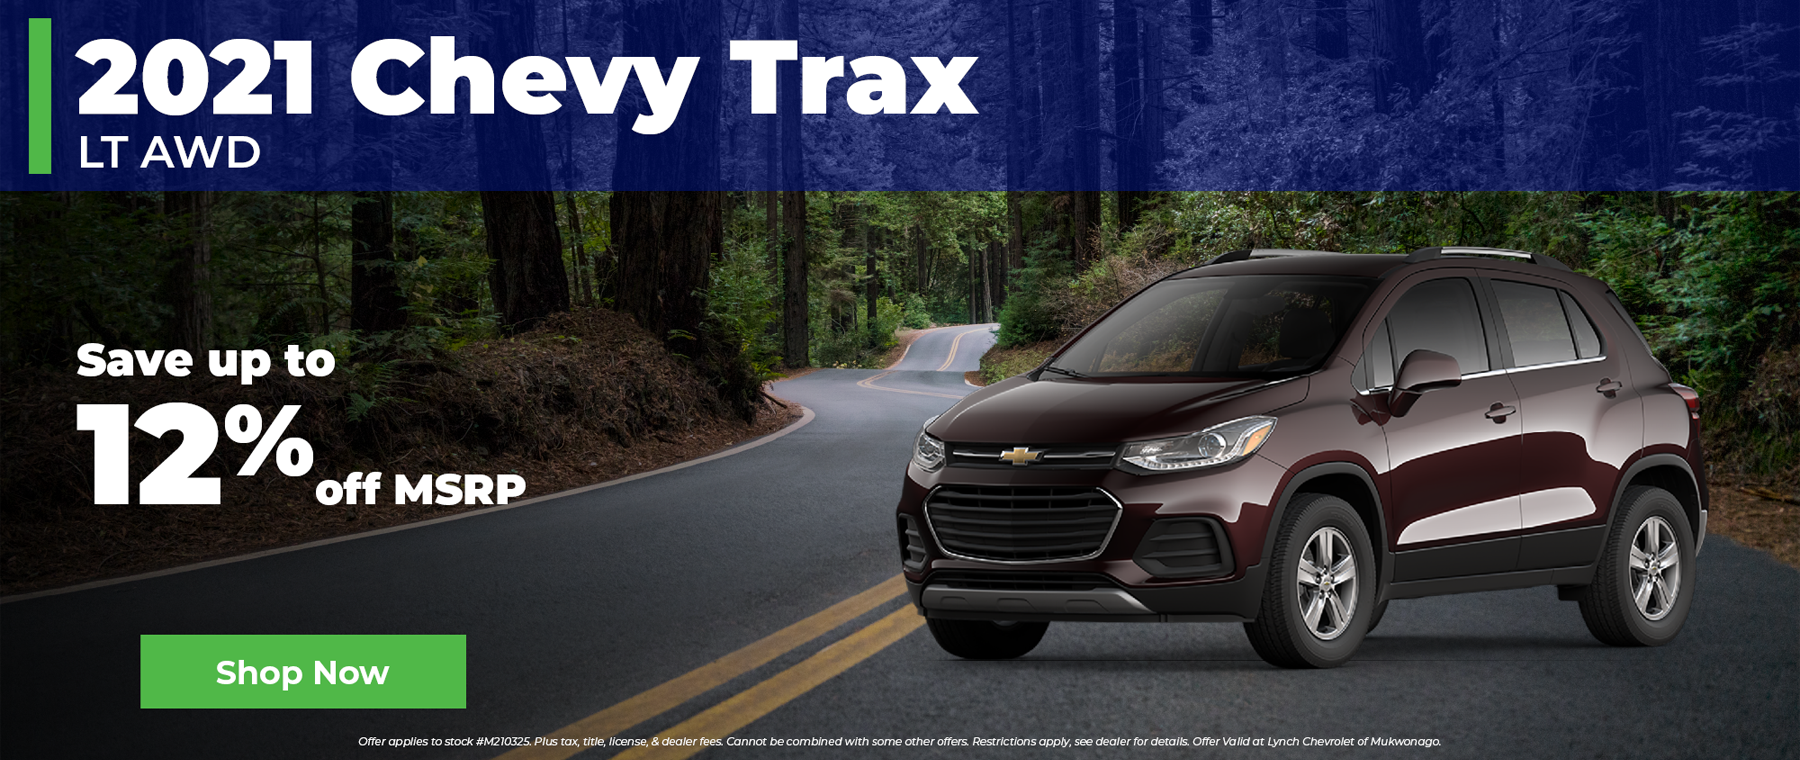 12% off 2021 Chevy Trax in Mukwonago Wisconsin